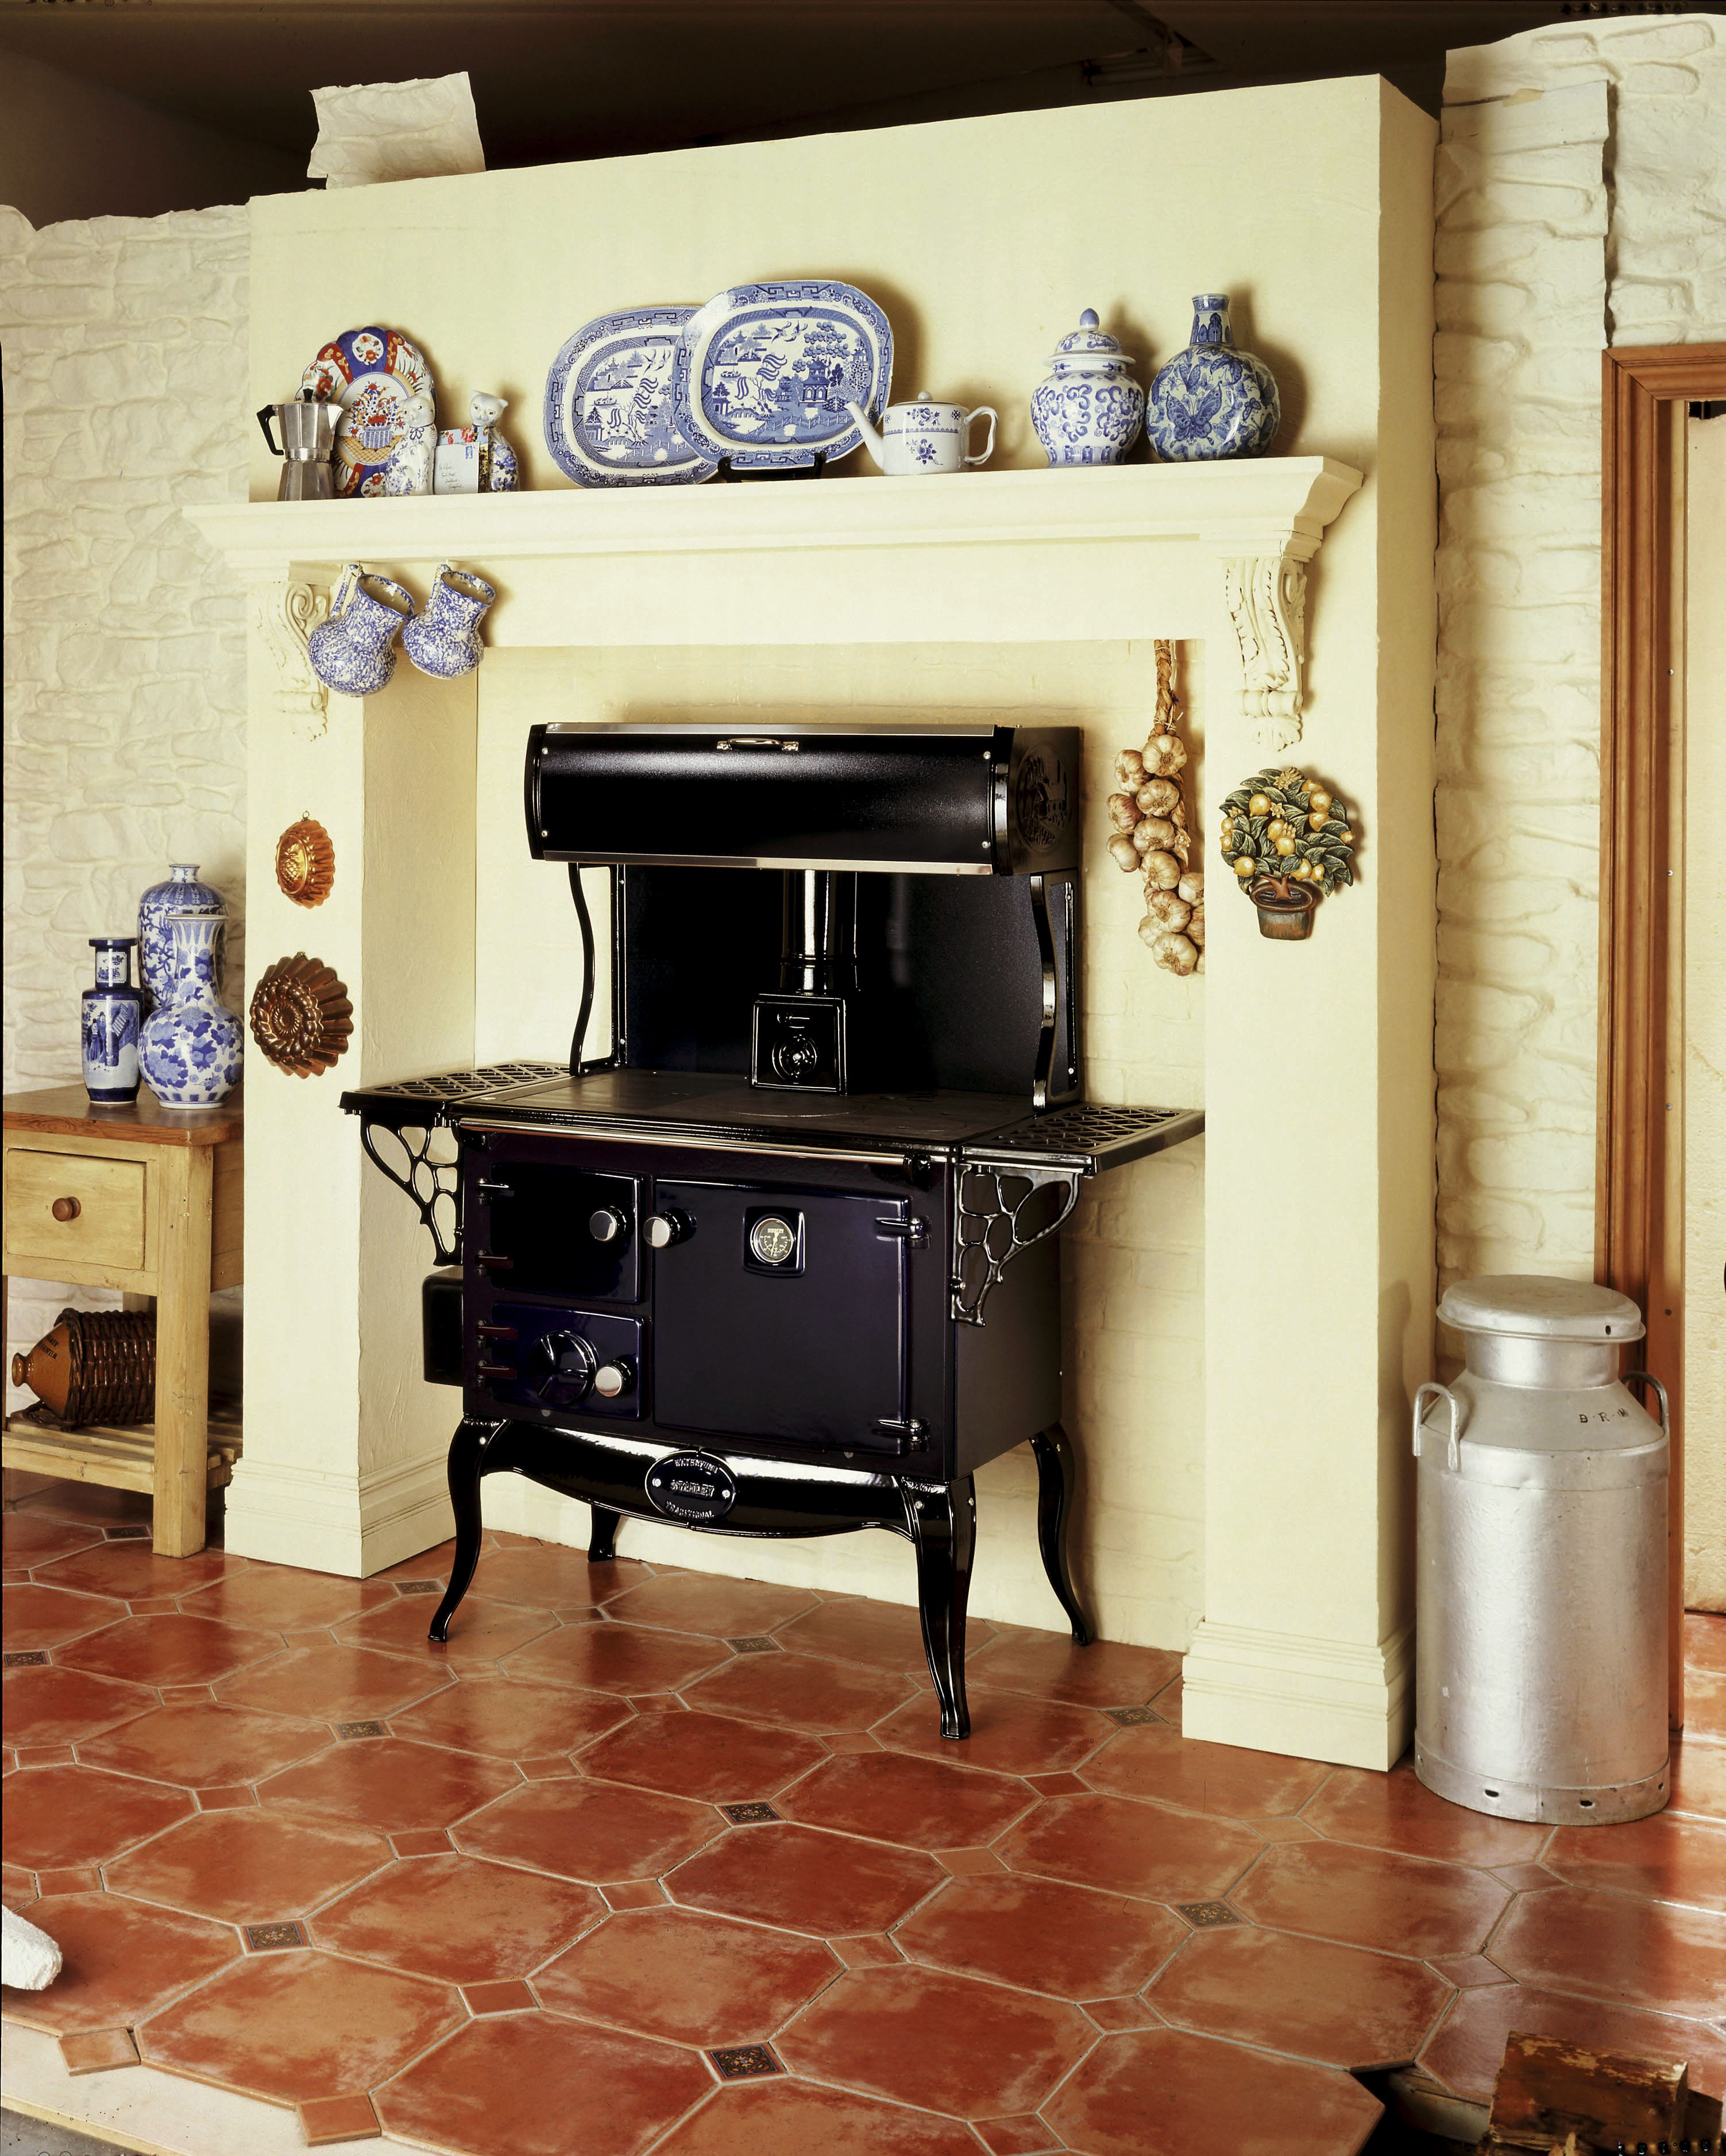 wood kitchen stoves for sale printer waterford stanley woodburning cookstove a popular